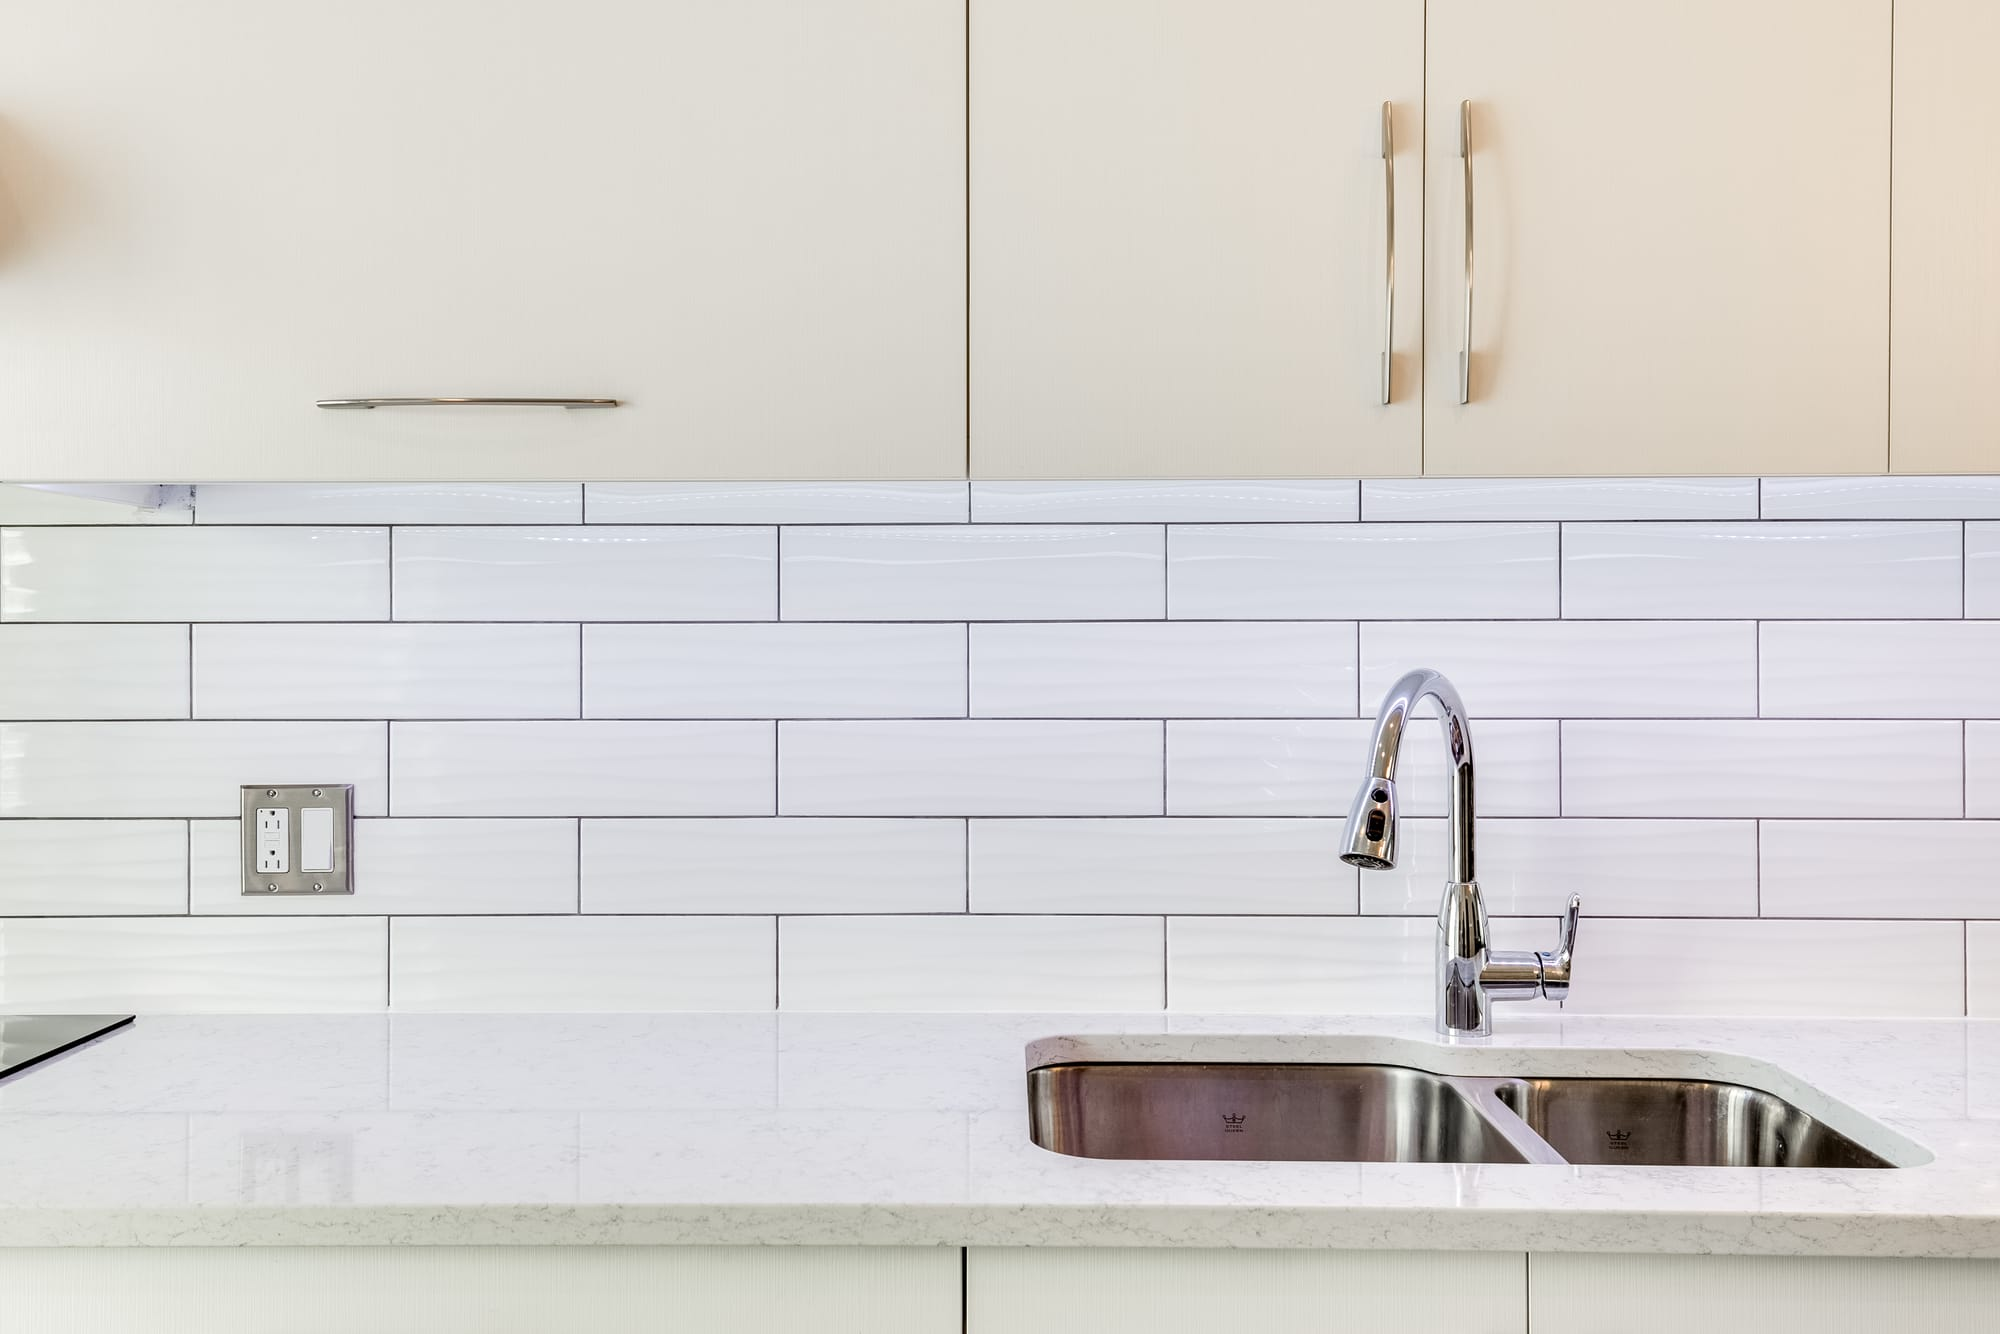 white ceramic kitchen backsplash with a stainless steel faucet